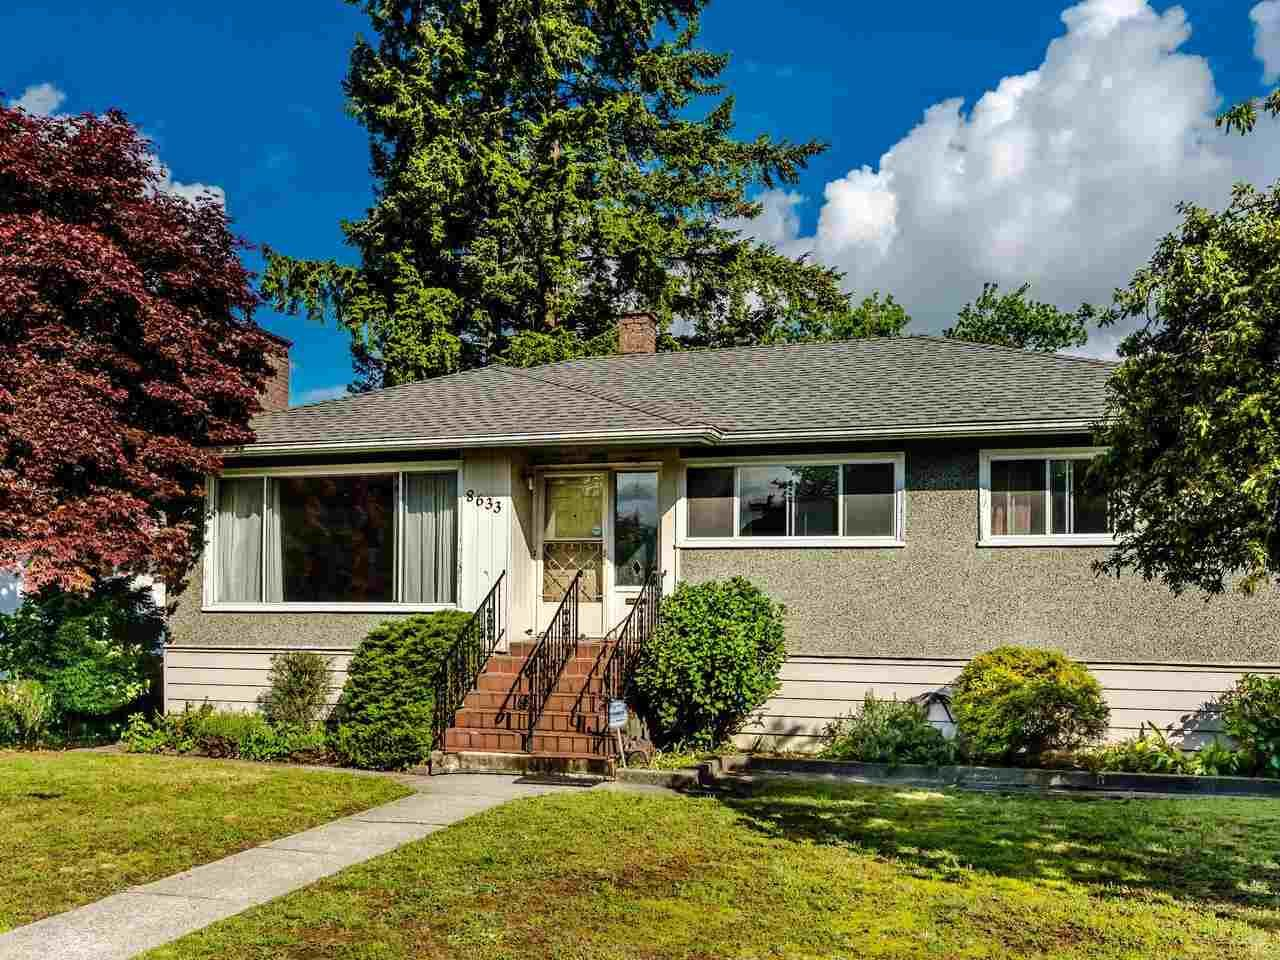 """Main Photo: 8633 12TH Avenue in Burnaby: The Crest House for sale in """"The Crest"""" (Burnaby East)  : MLS®# R2582631"""